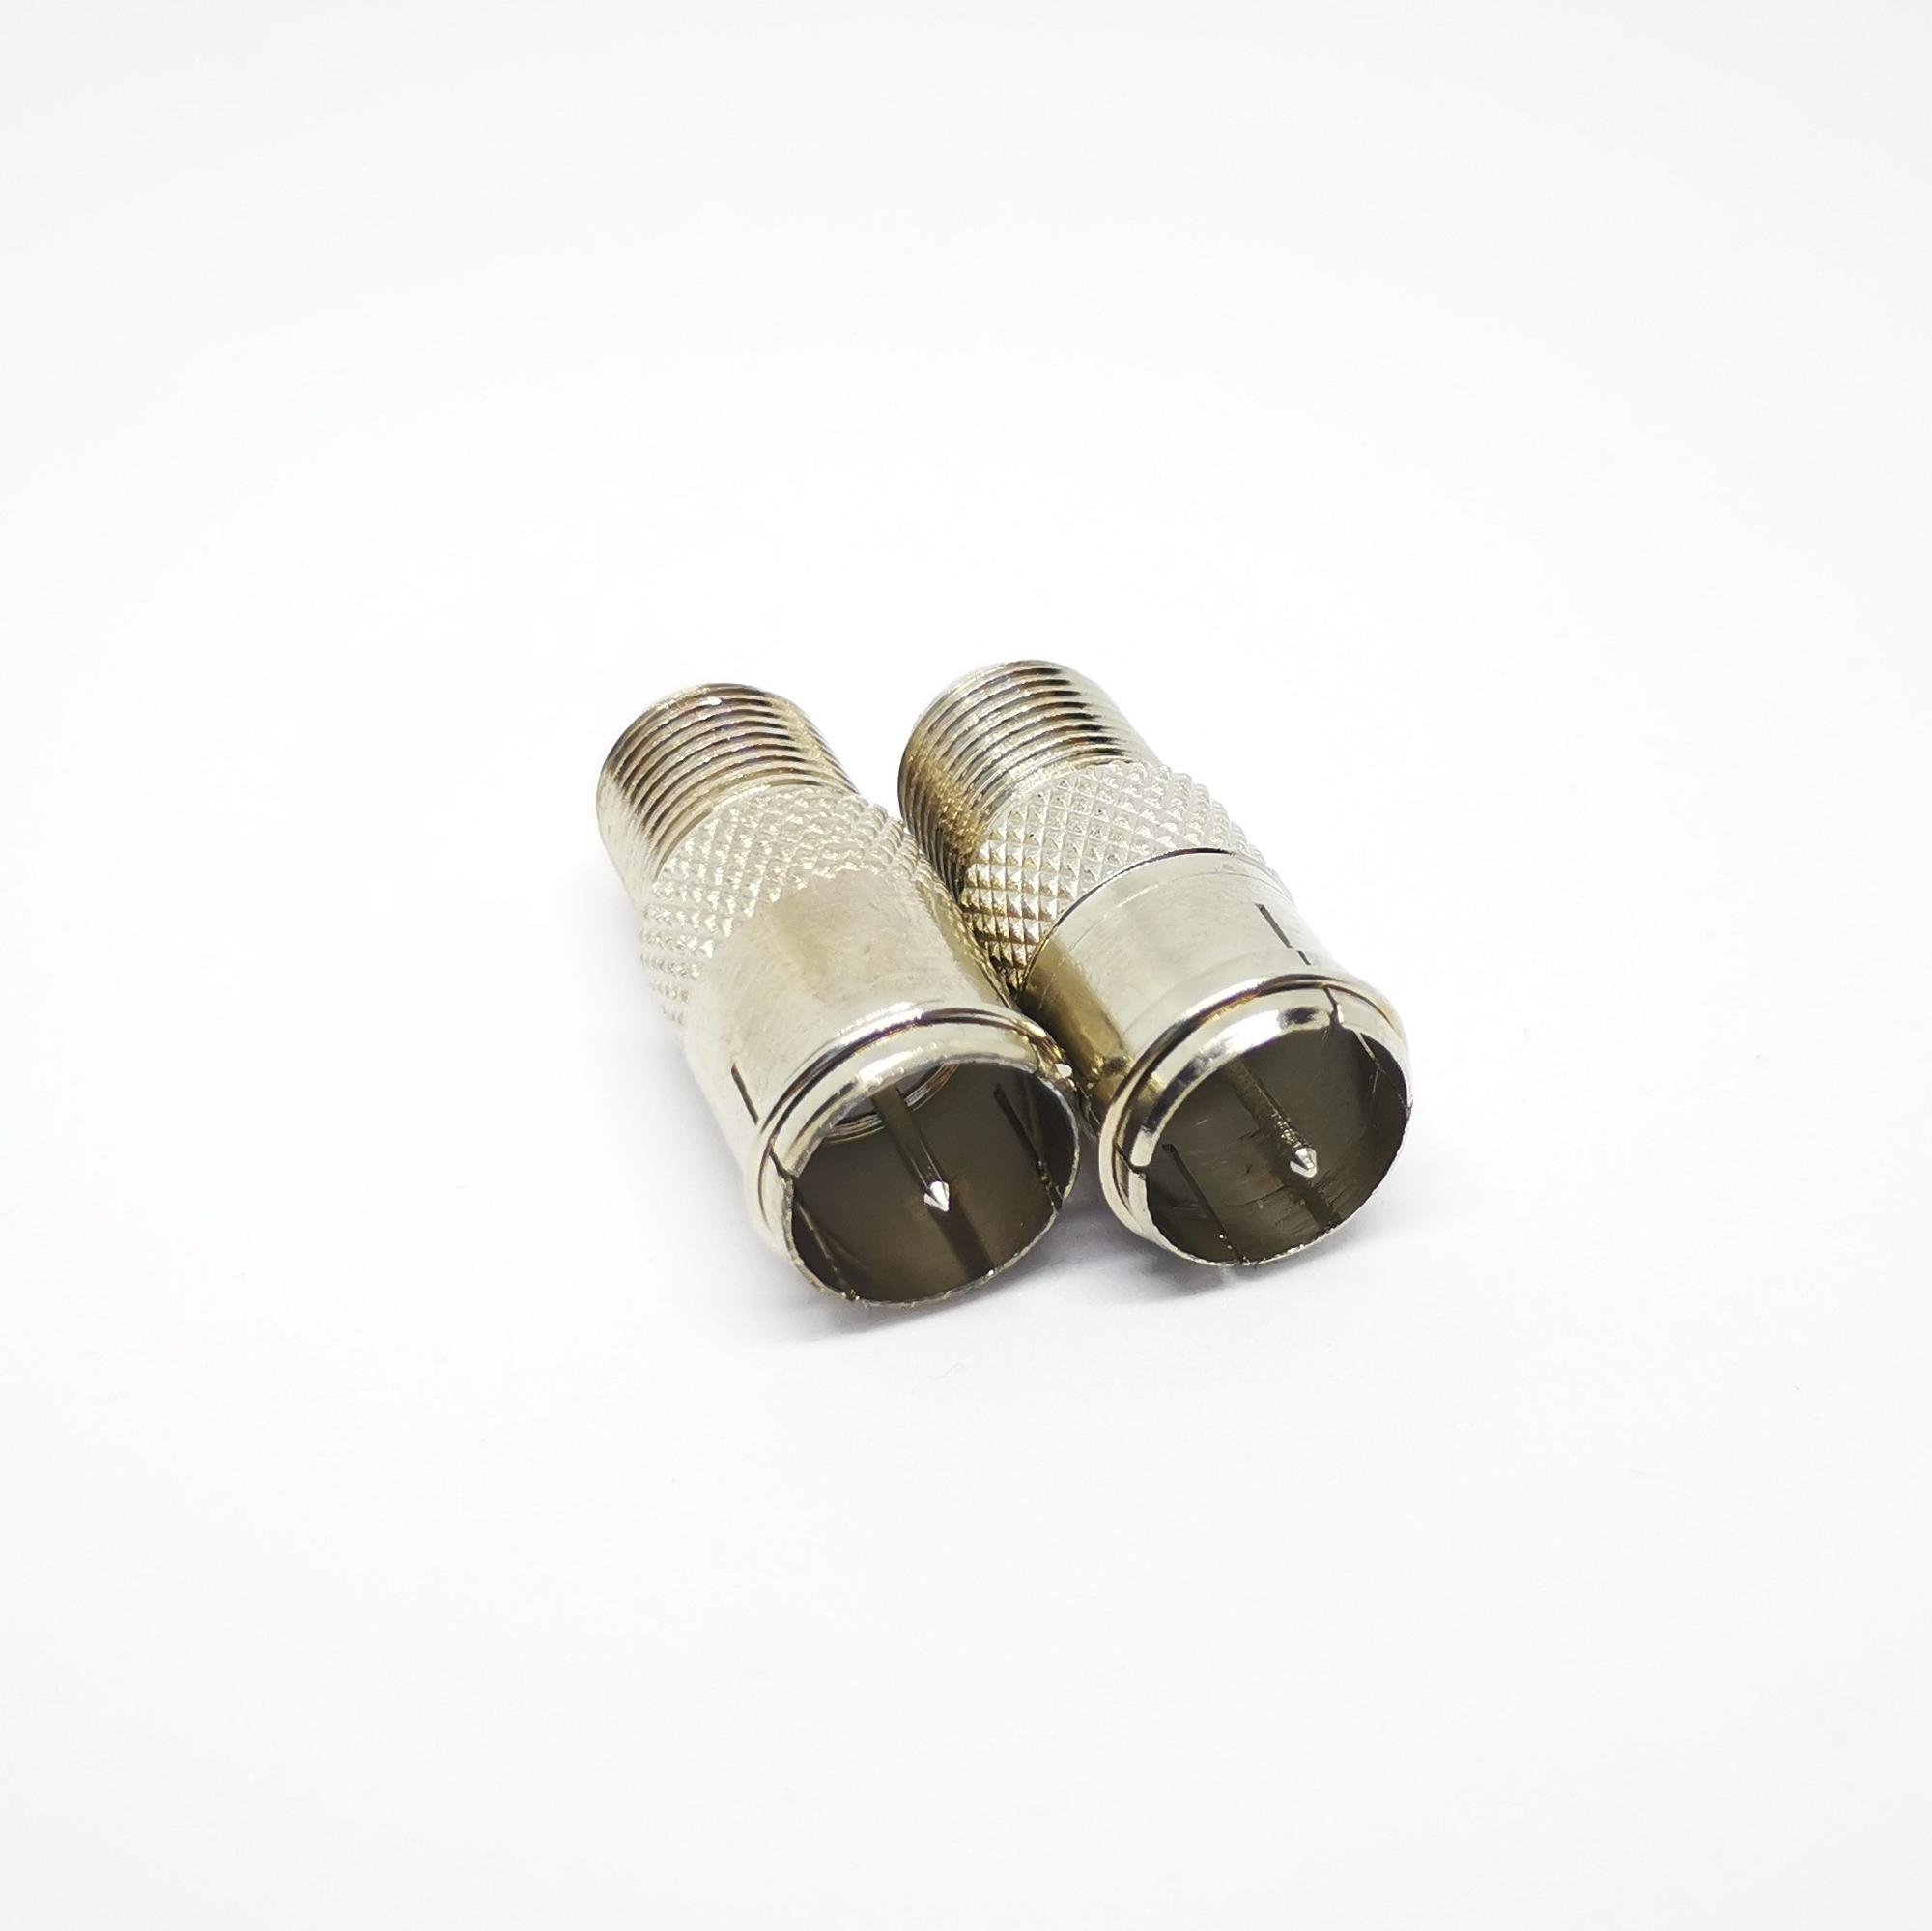 整体销售 F male to 9.5 male bnc connector